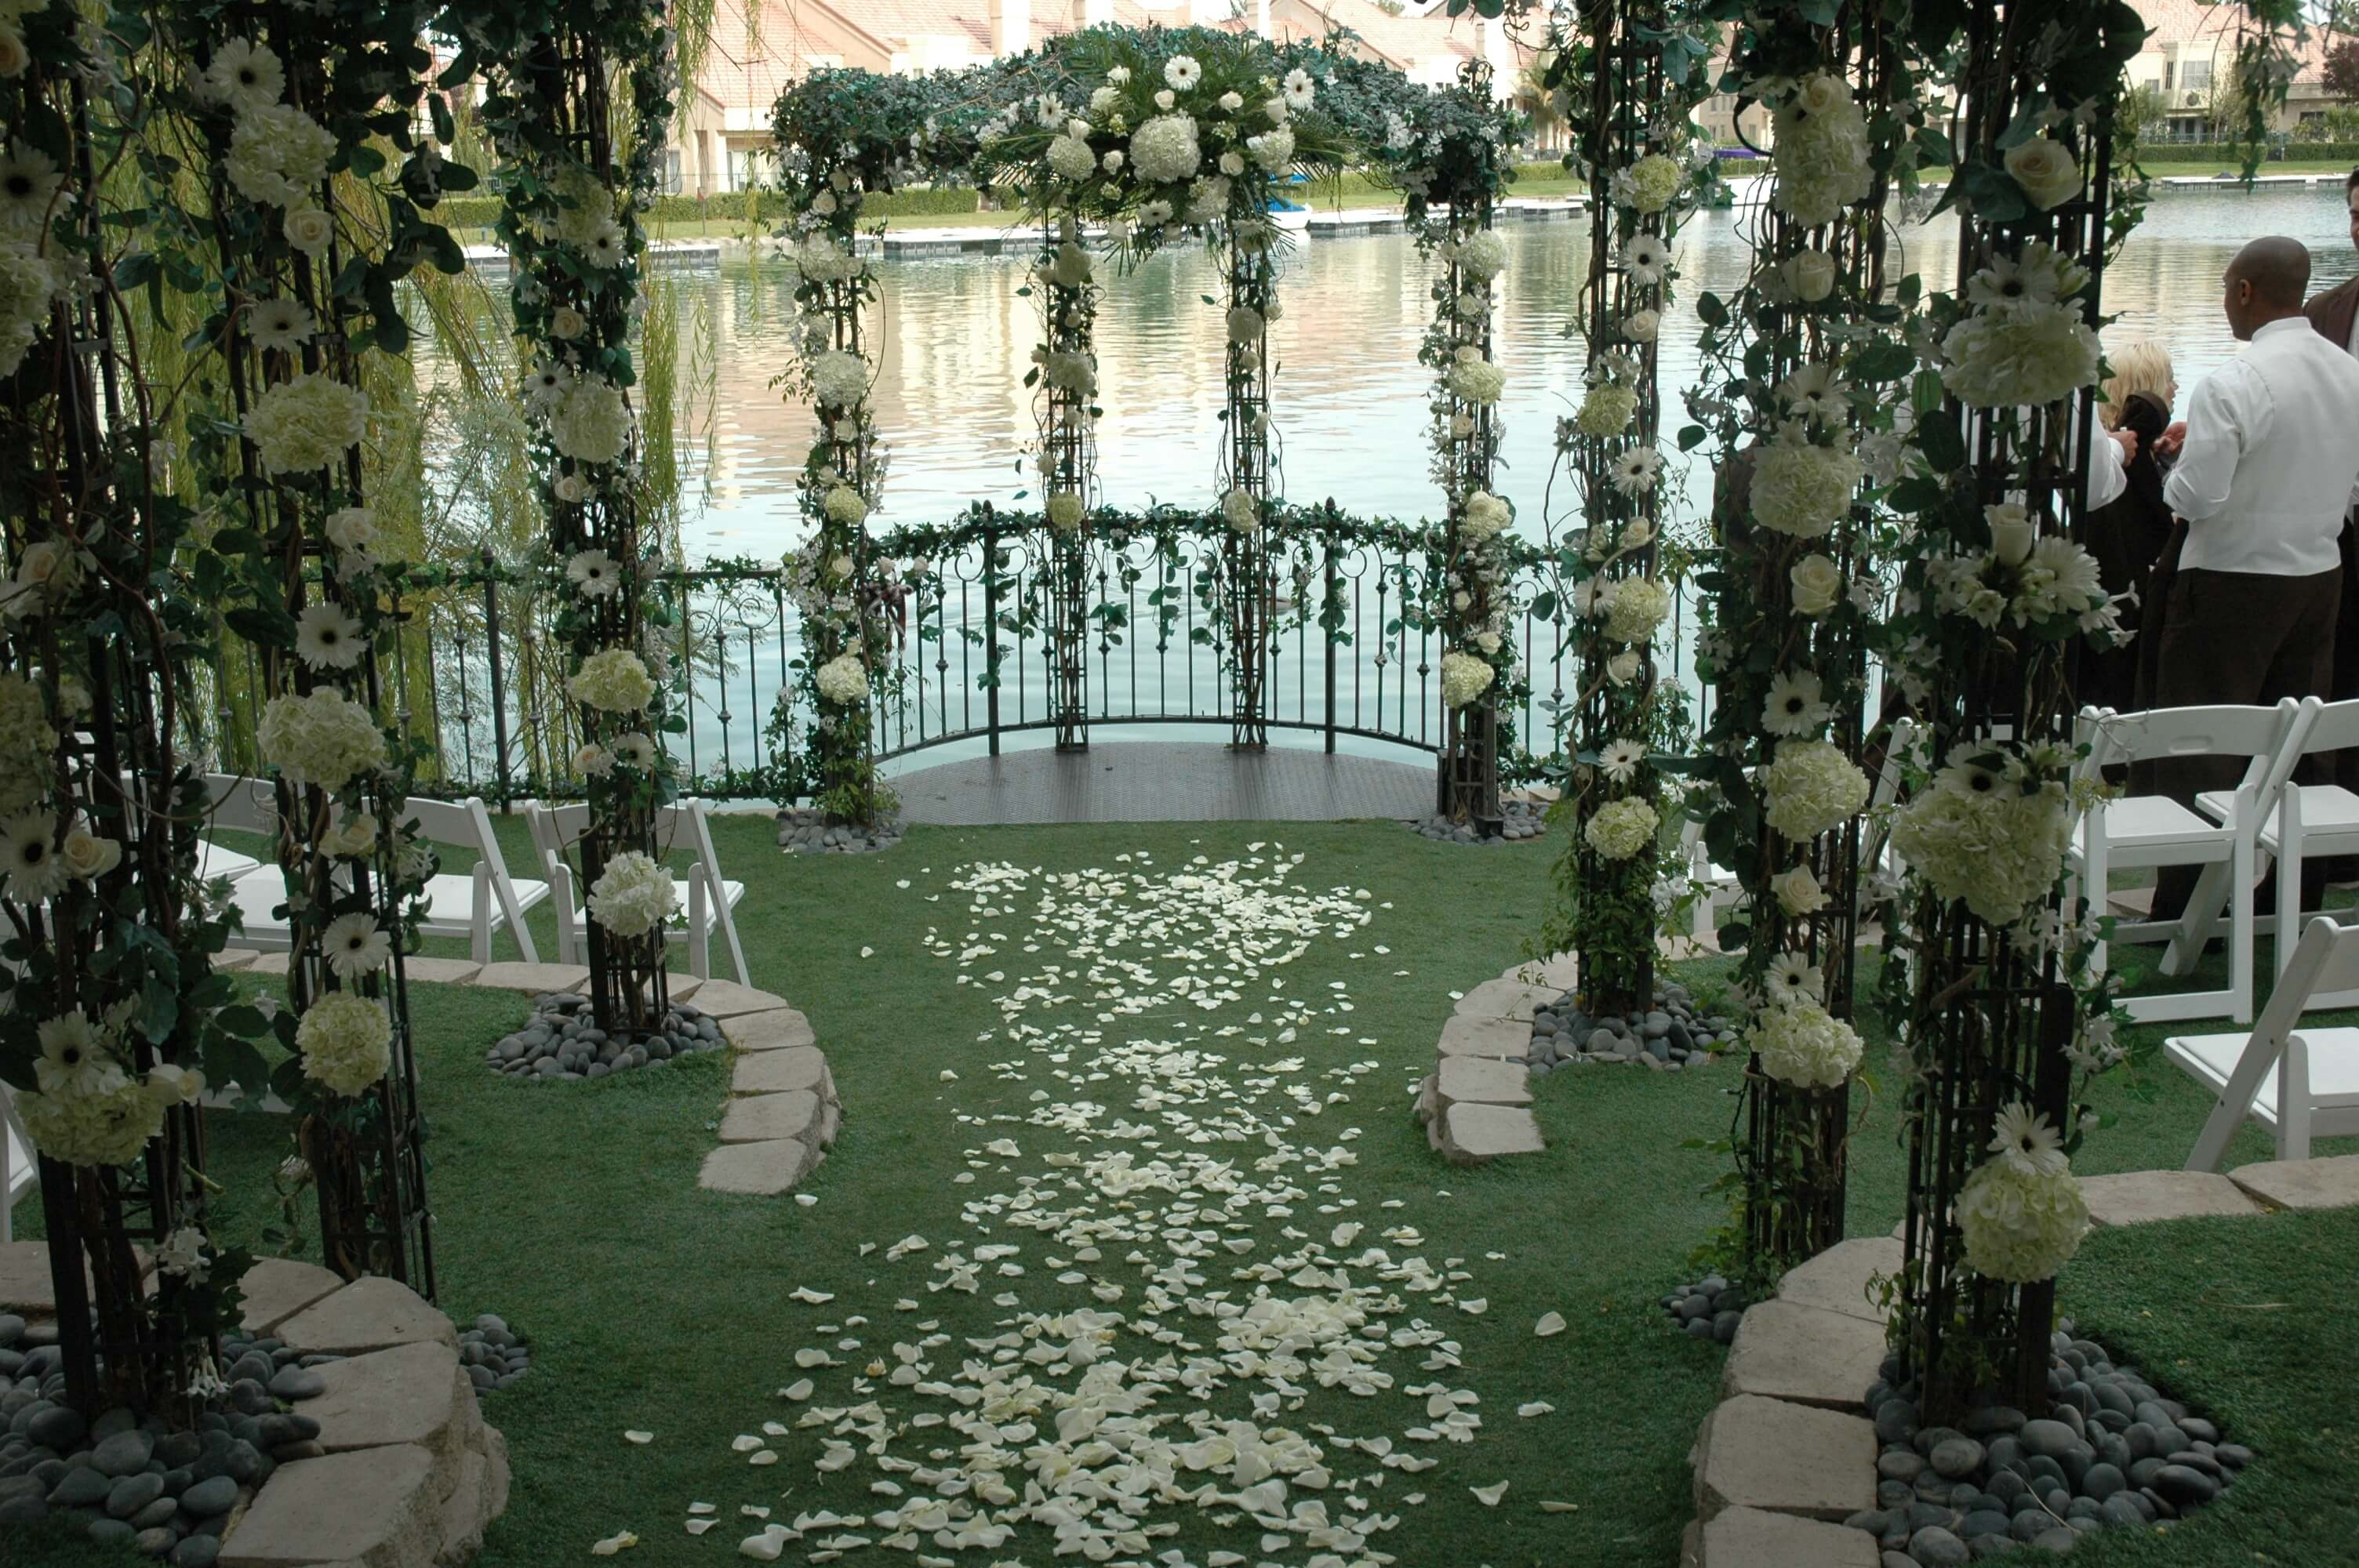 Las Vegas Wedding Packages All Inclusive.Special Lakeside Emerald All Inclusive Wedding Reception Package Up To 50 Guests Included